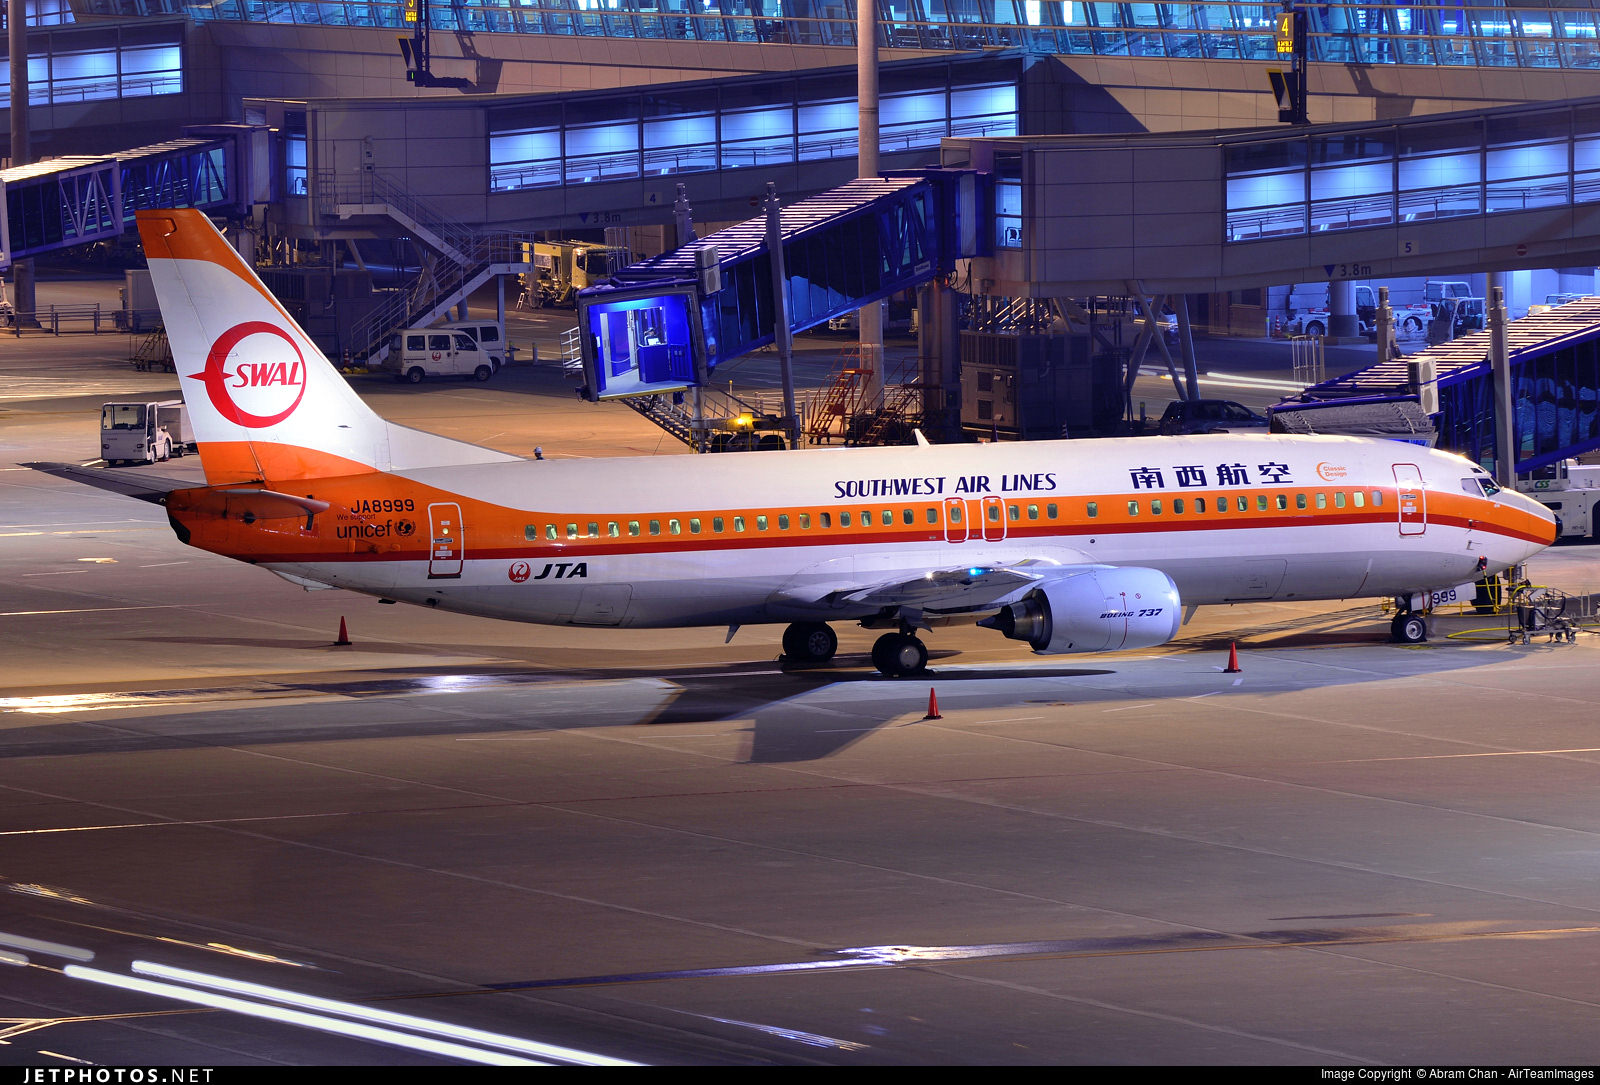 Japan TransOcean Airlines' retro Southwest Air Lines livery.